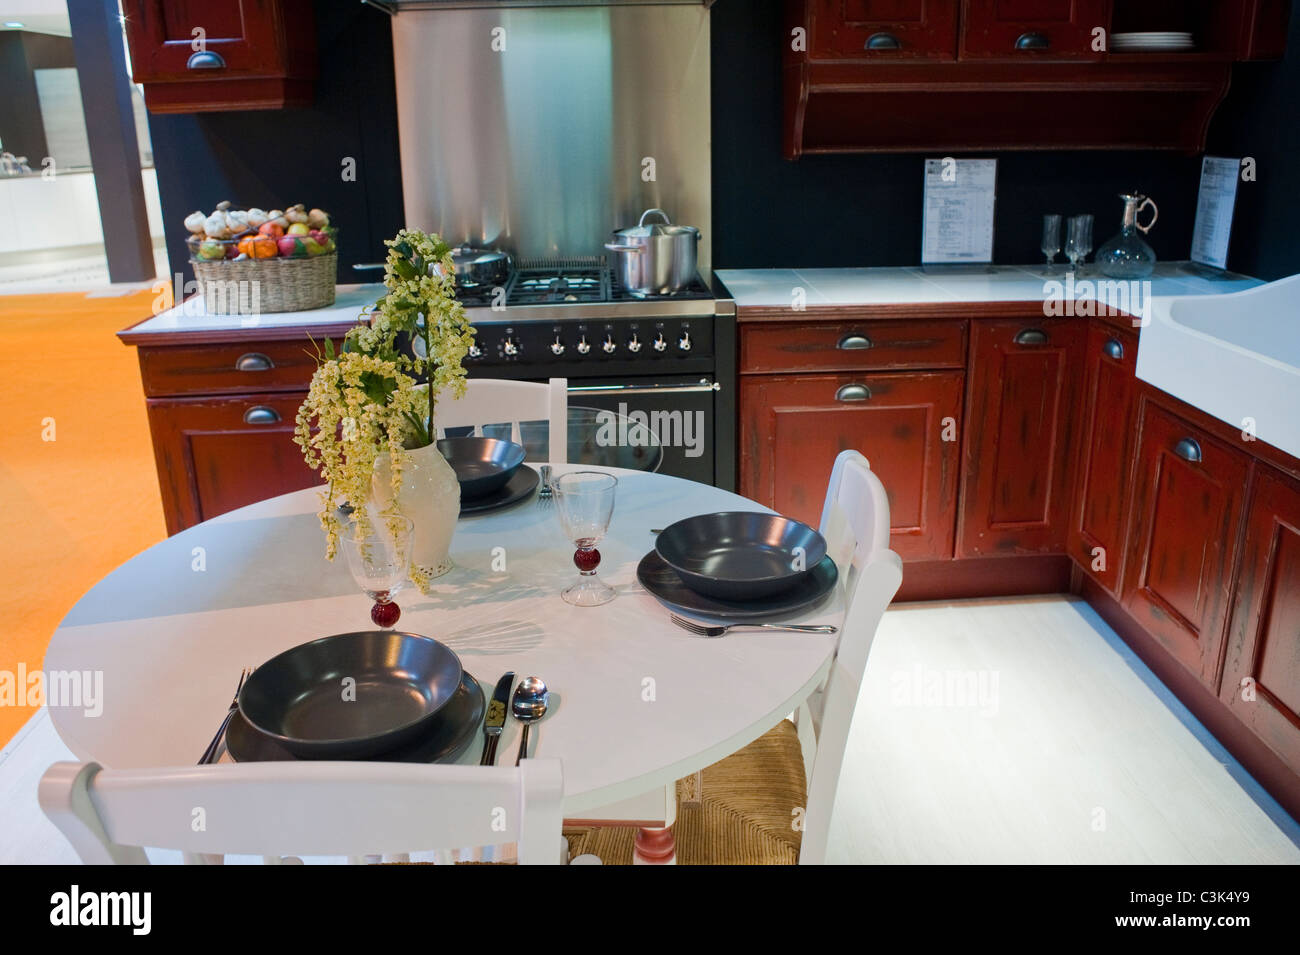 Cuisine Schmidt Foire De Paris paris france modern kitchen design stock photos & paris